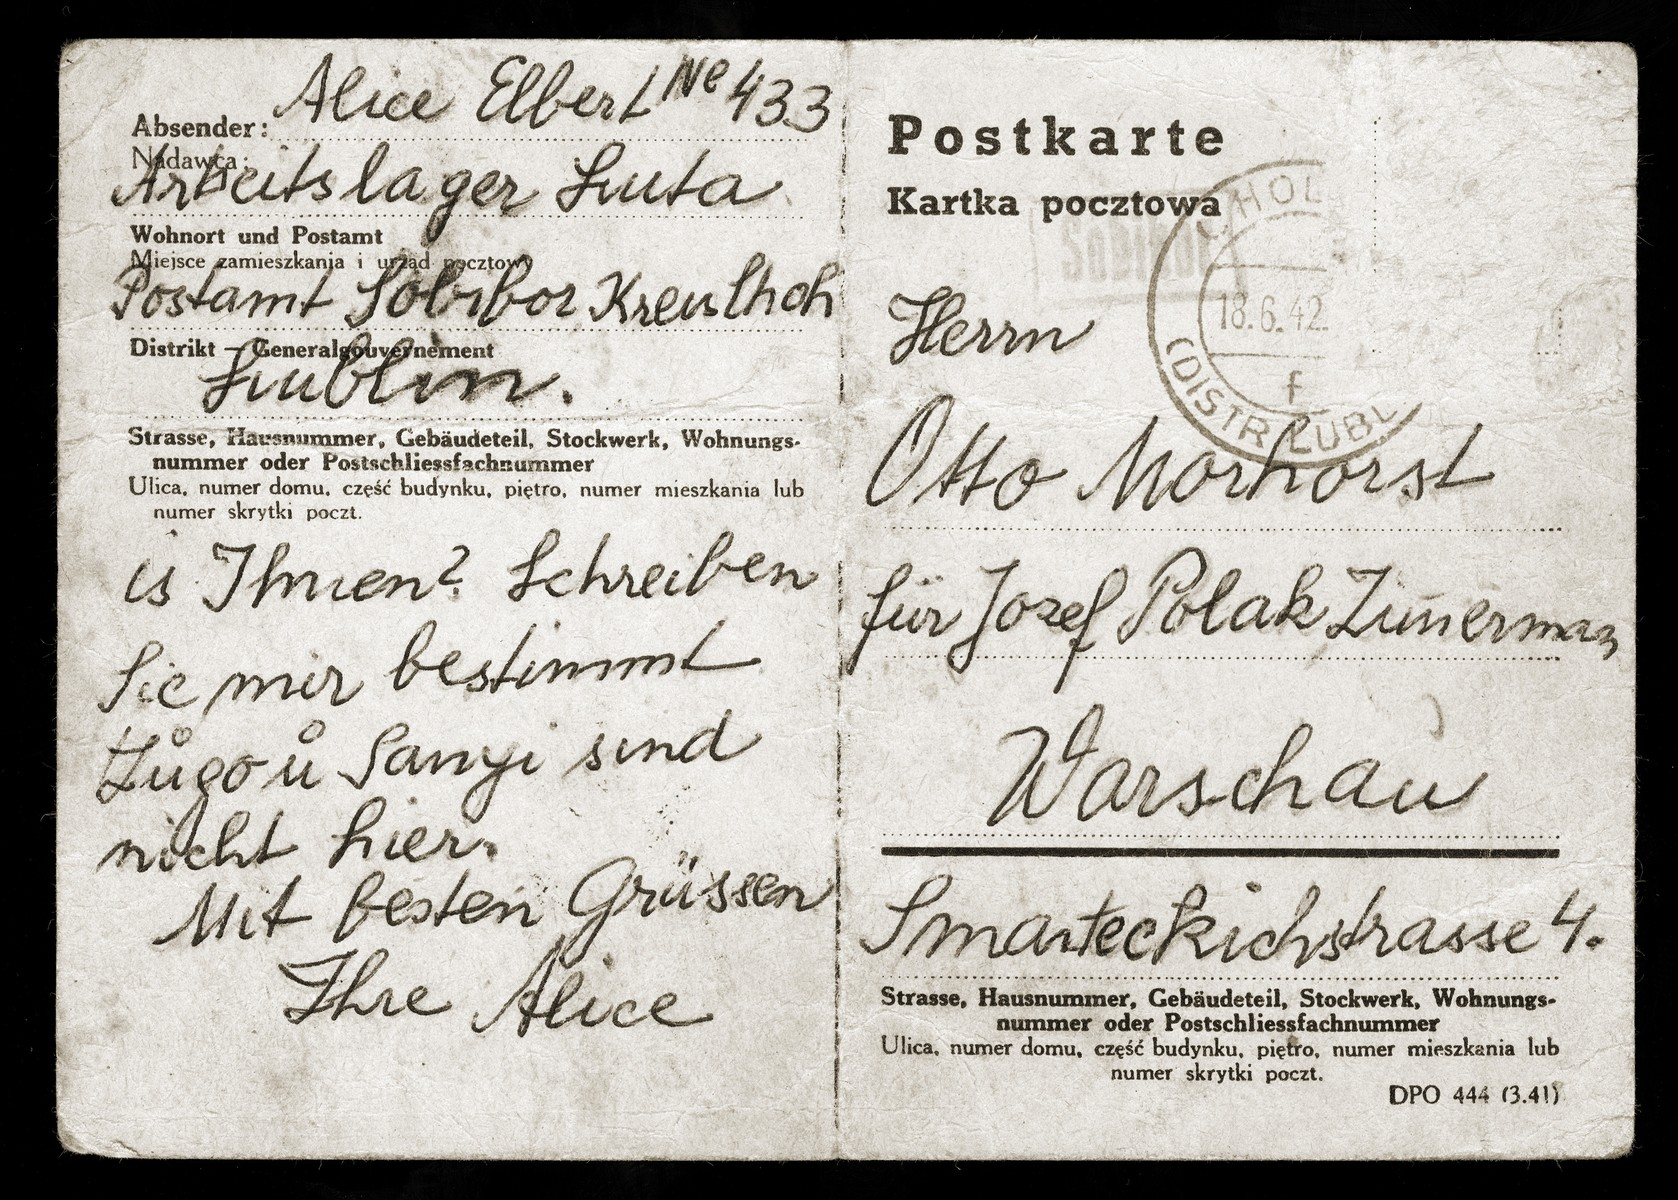 A postcard from Sobibor written by Alice Elbert, a Slovak Jew imprisoned in the Luta forced labor camp near Lublin, to family or friends in Warsaw.  In the message she writes that she is no longer with her husband and brother-in-law.